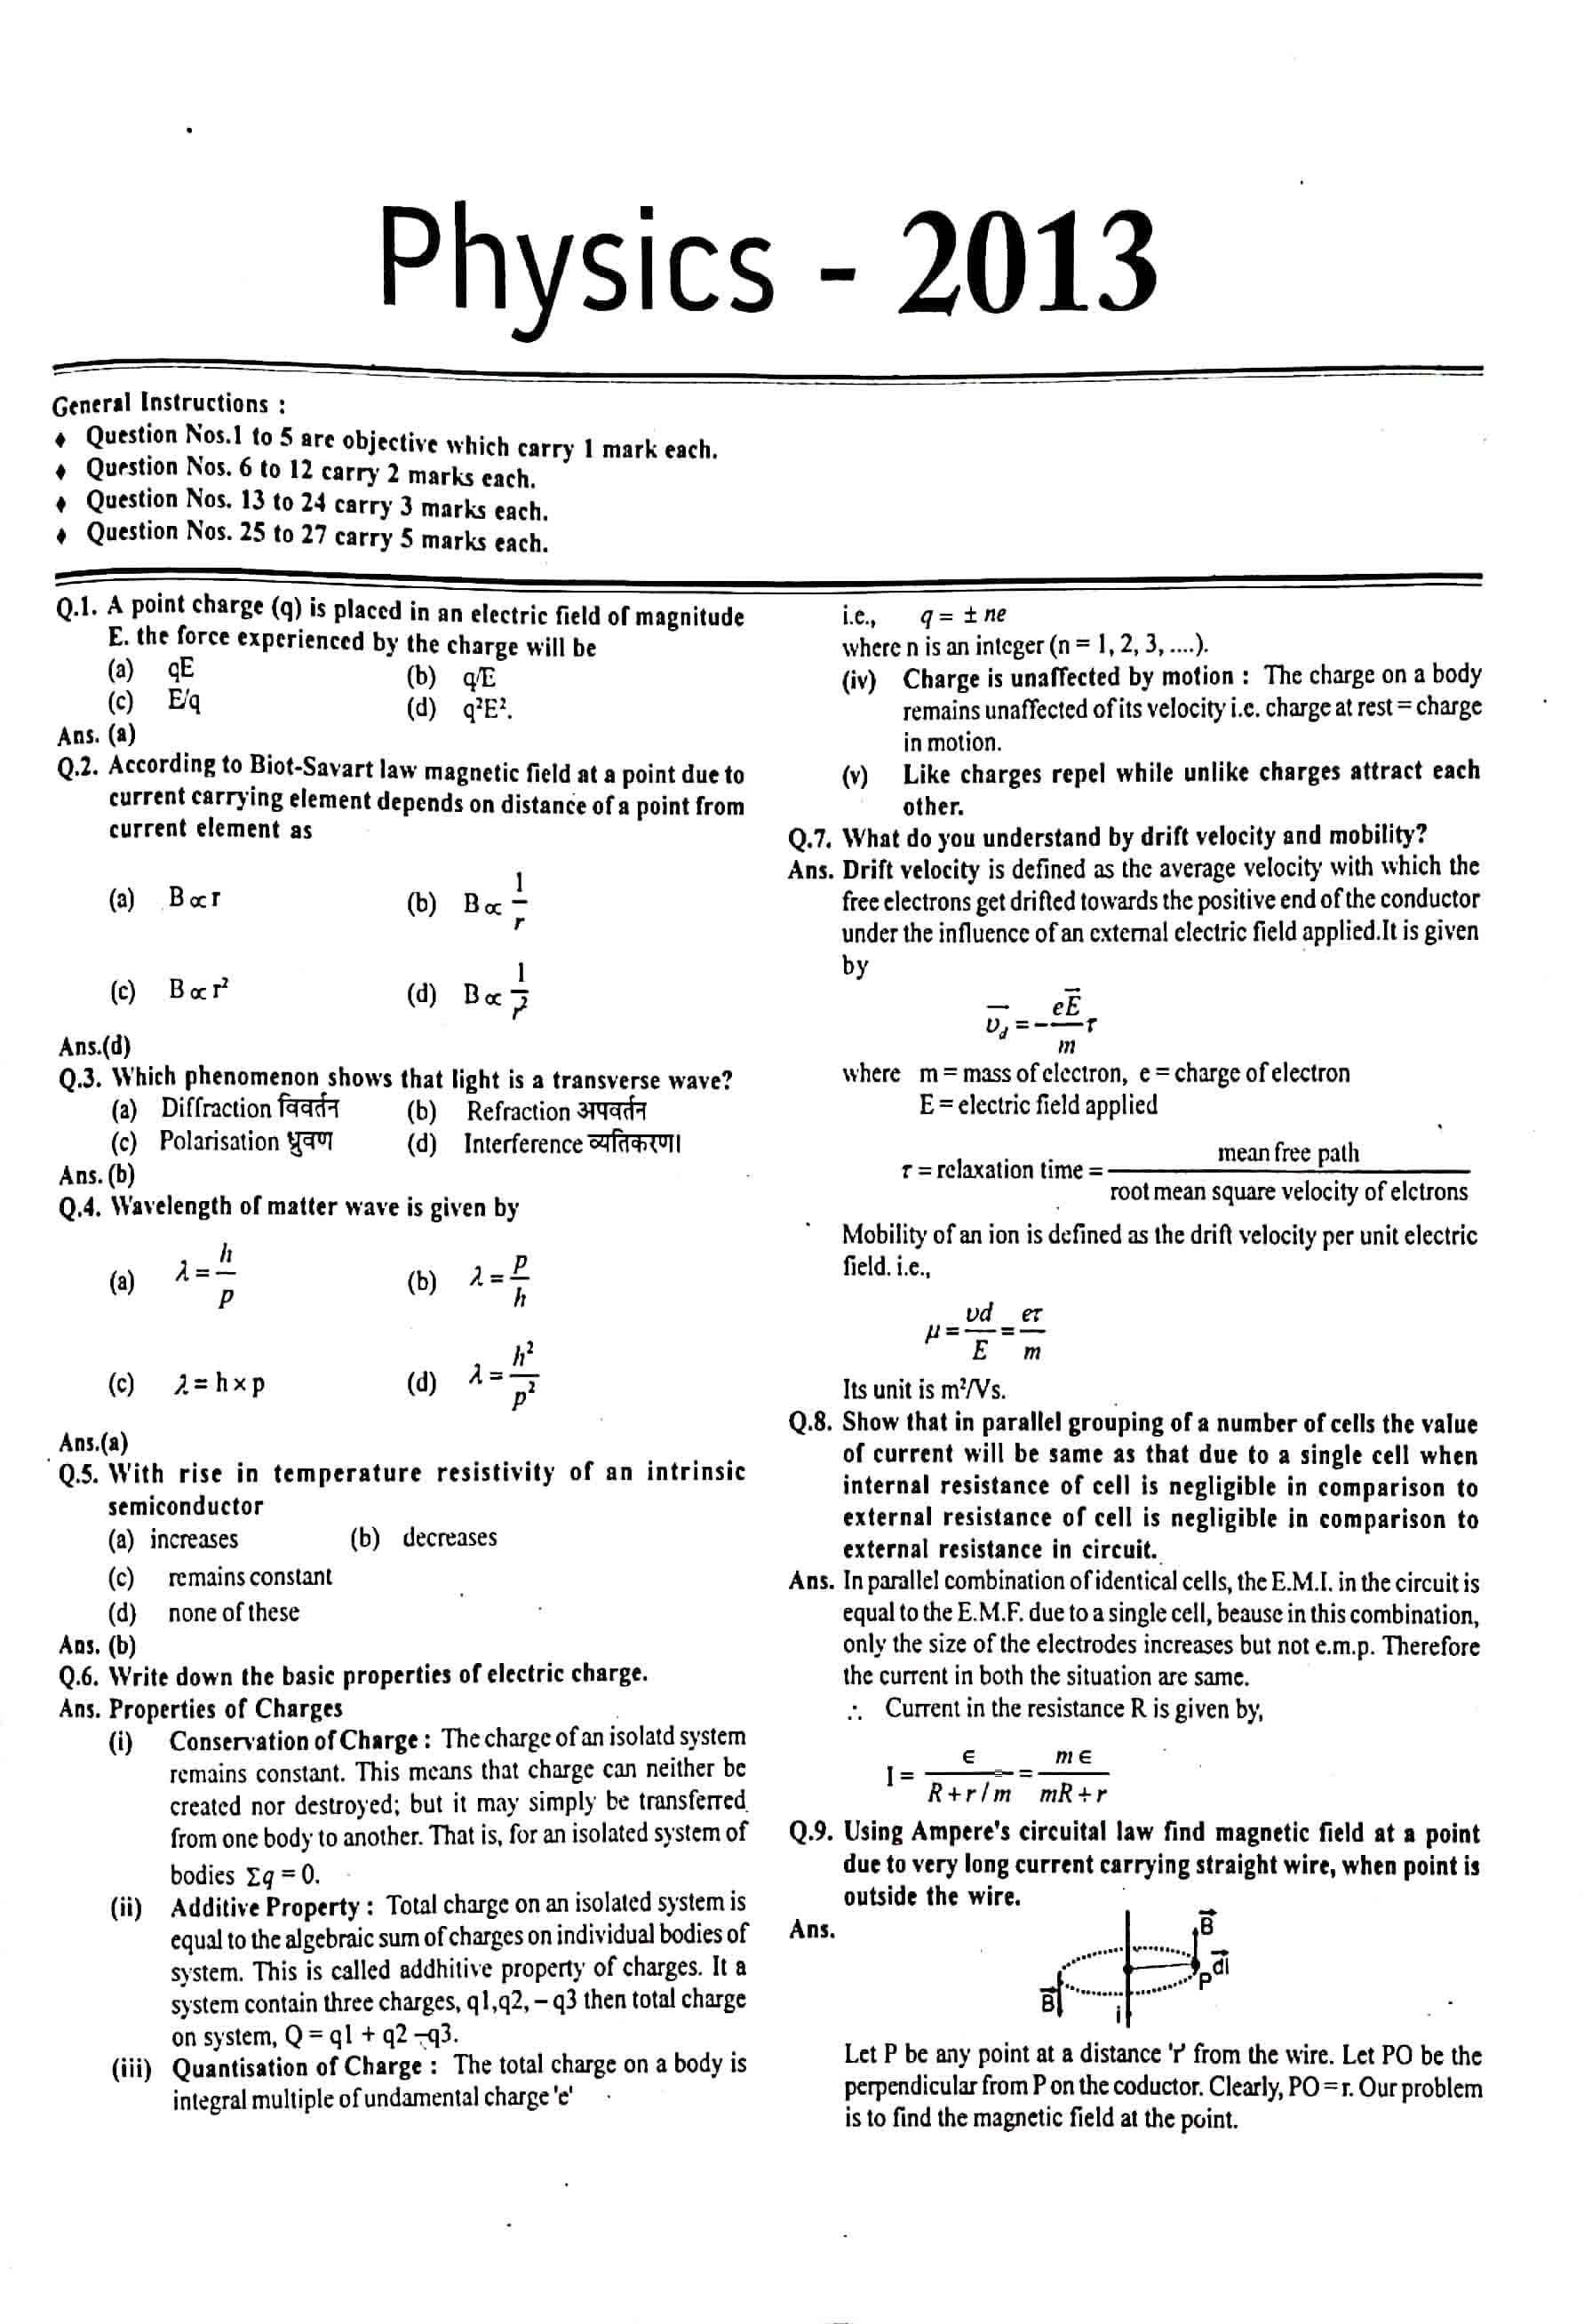 JAC Class 12 Physics 2013 Question Paper 01